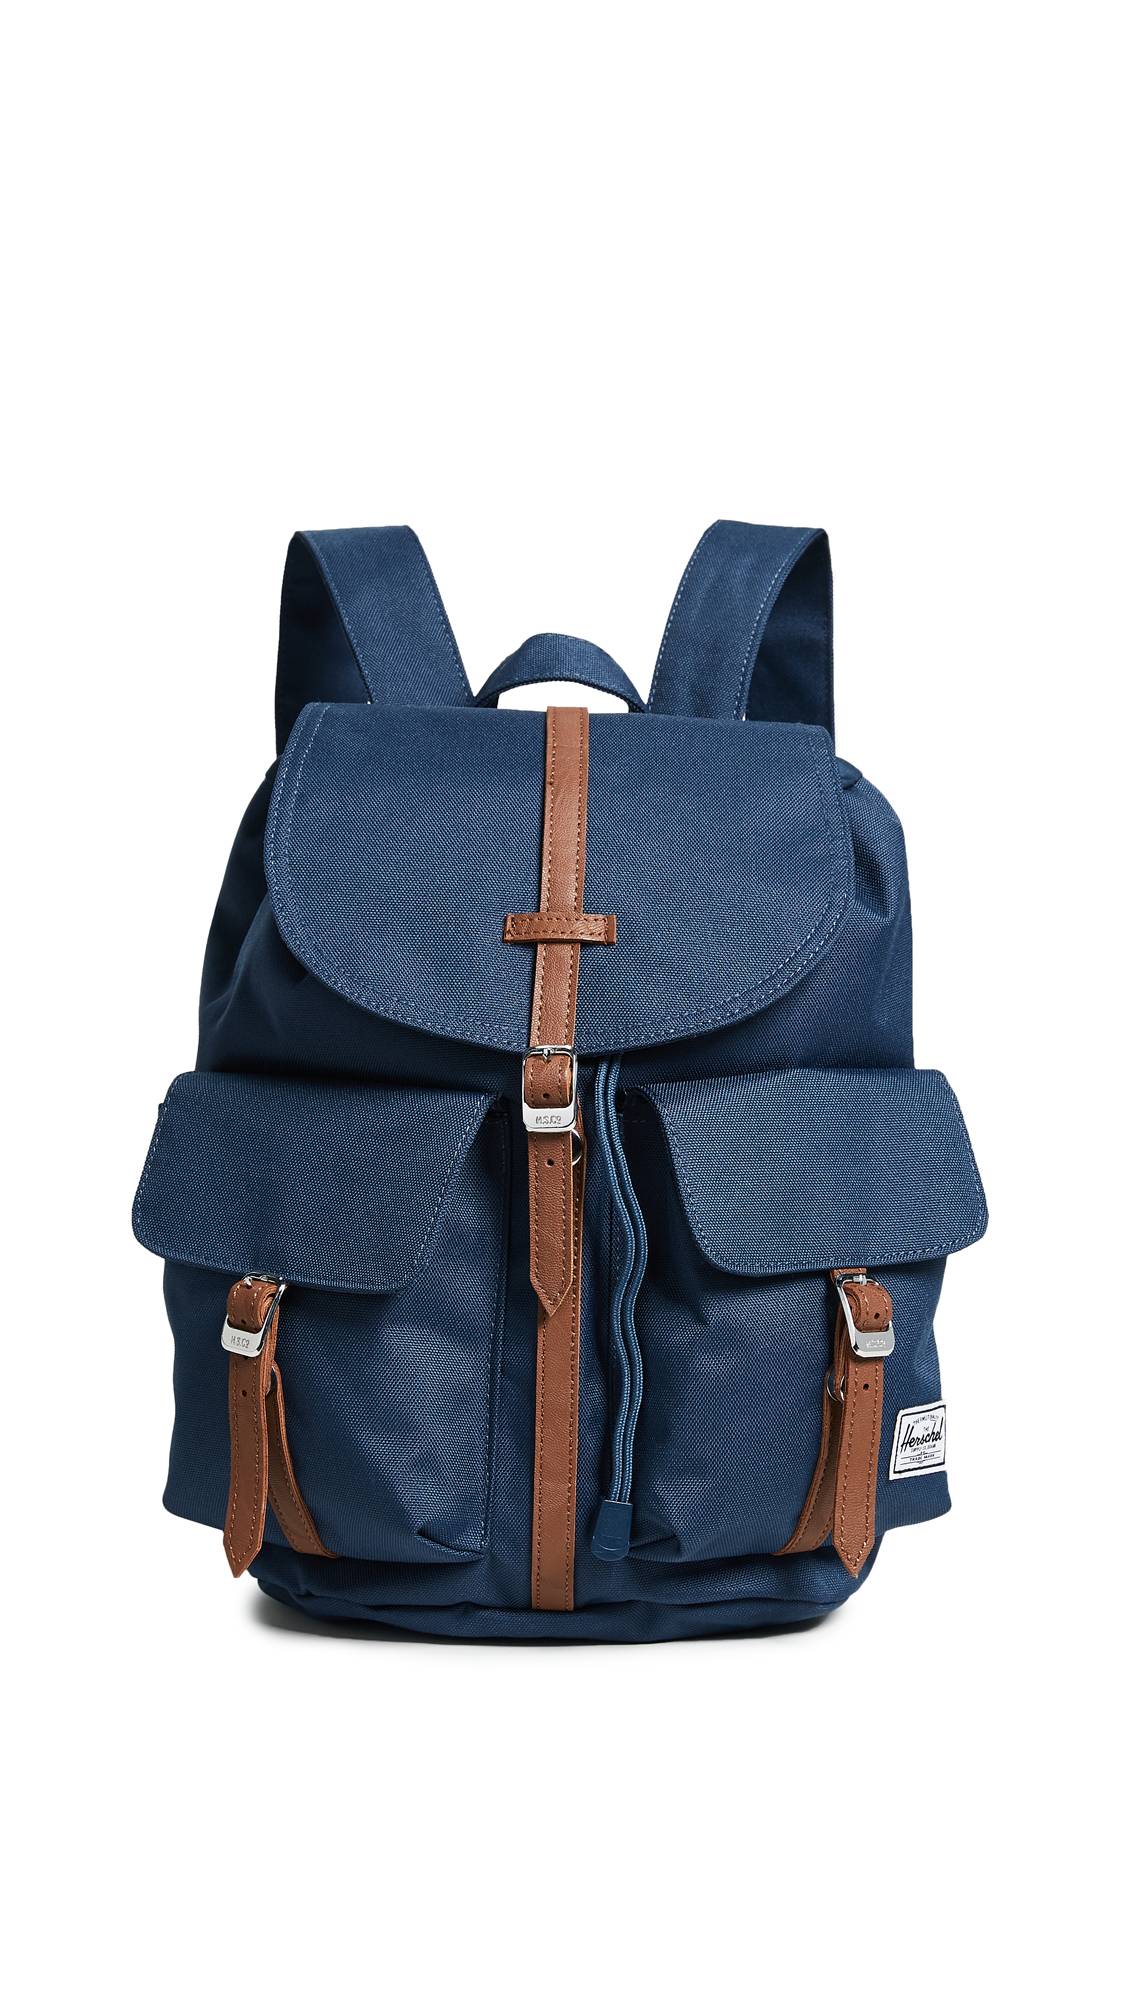 Herschel Supply Co. Dawson Extra Small Backpack - Navy/Tan